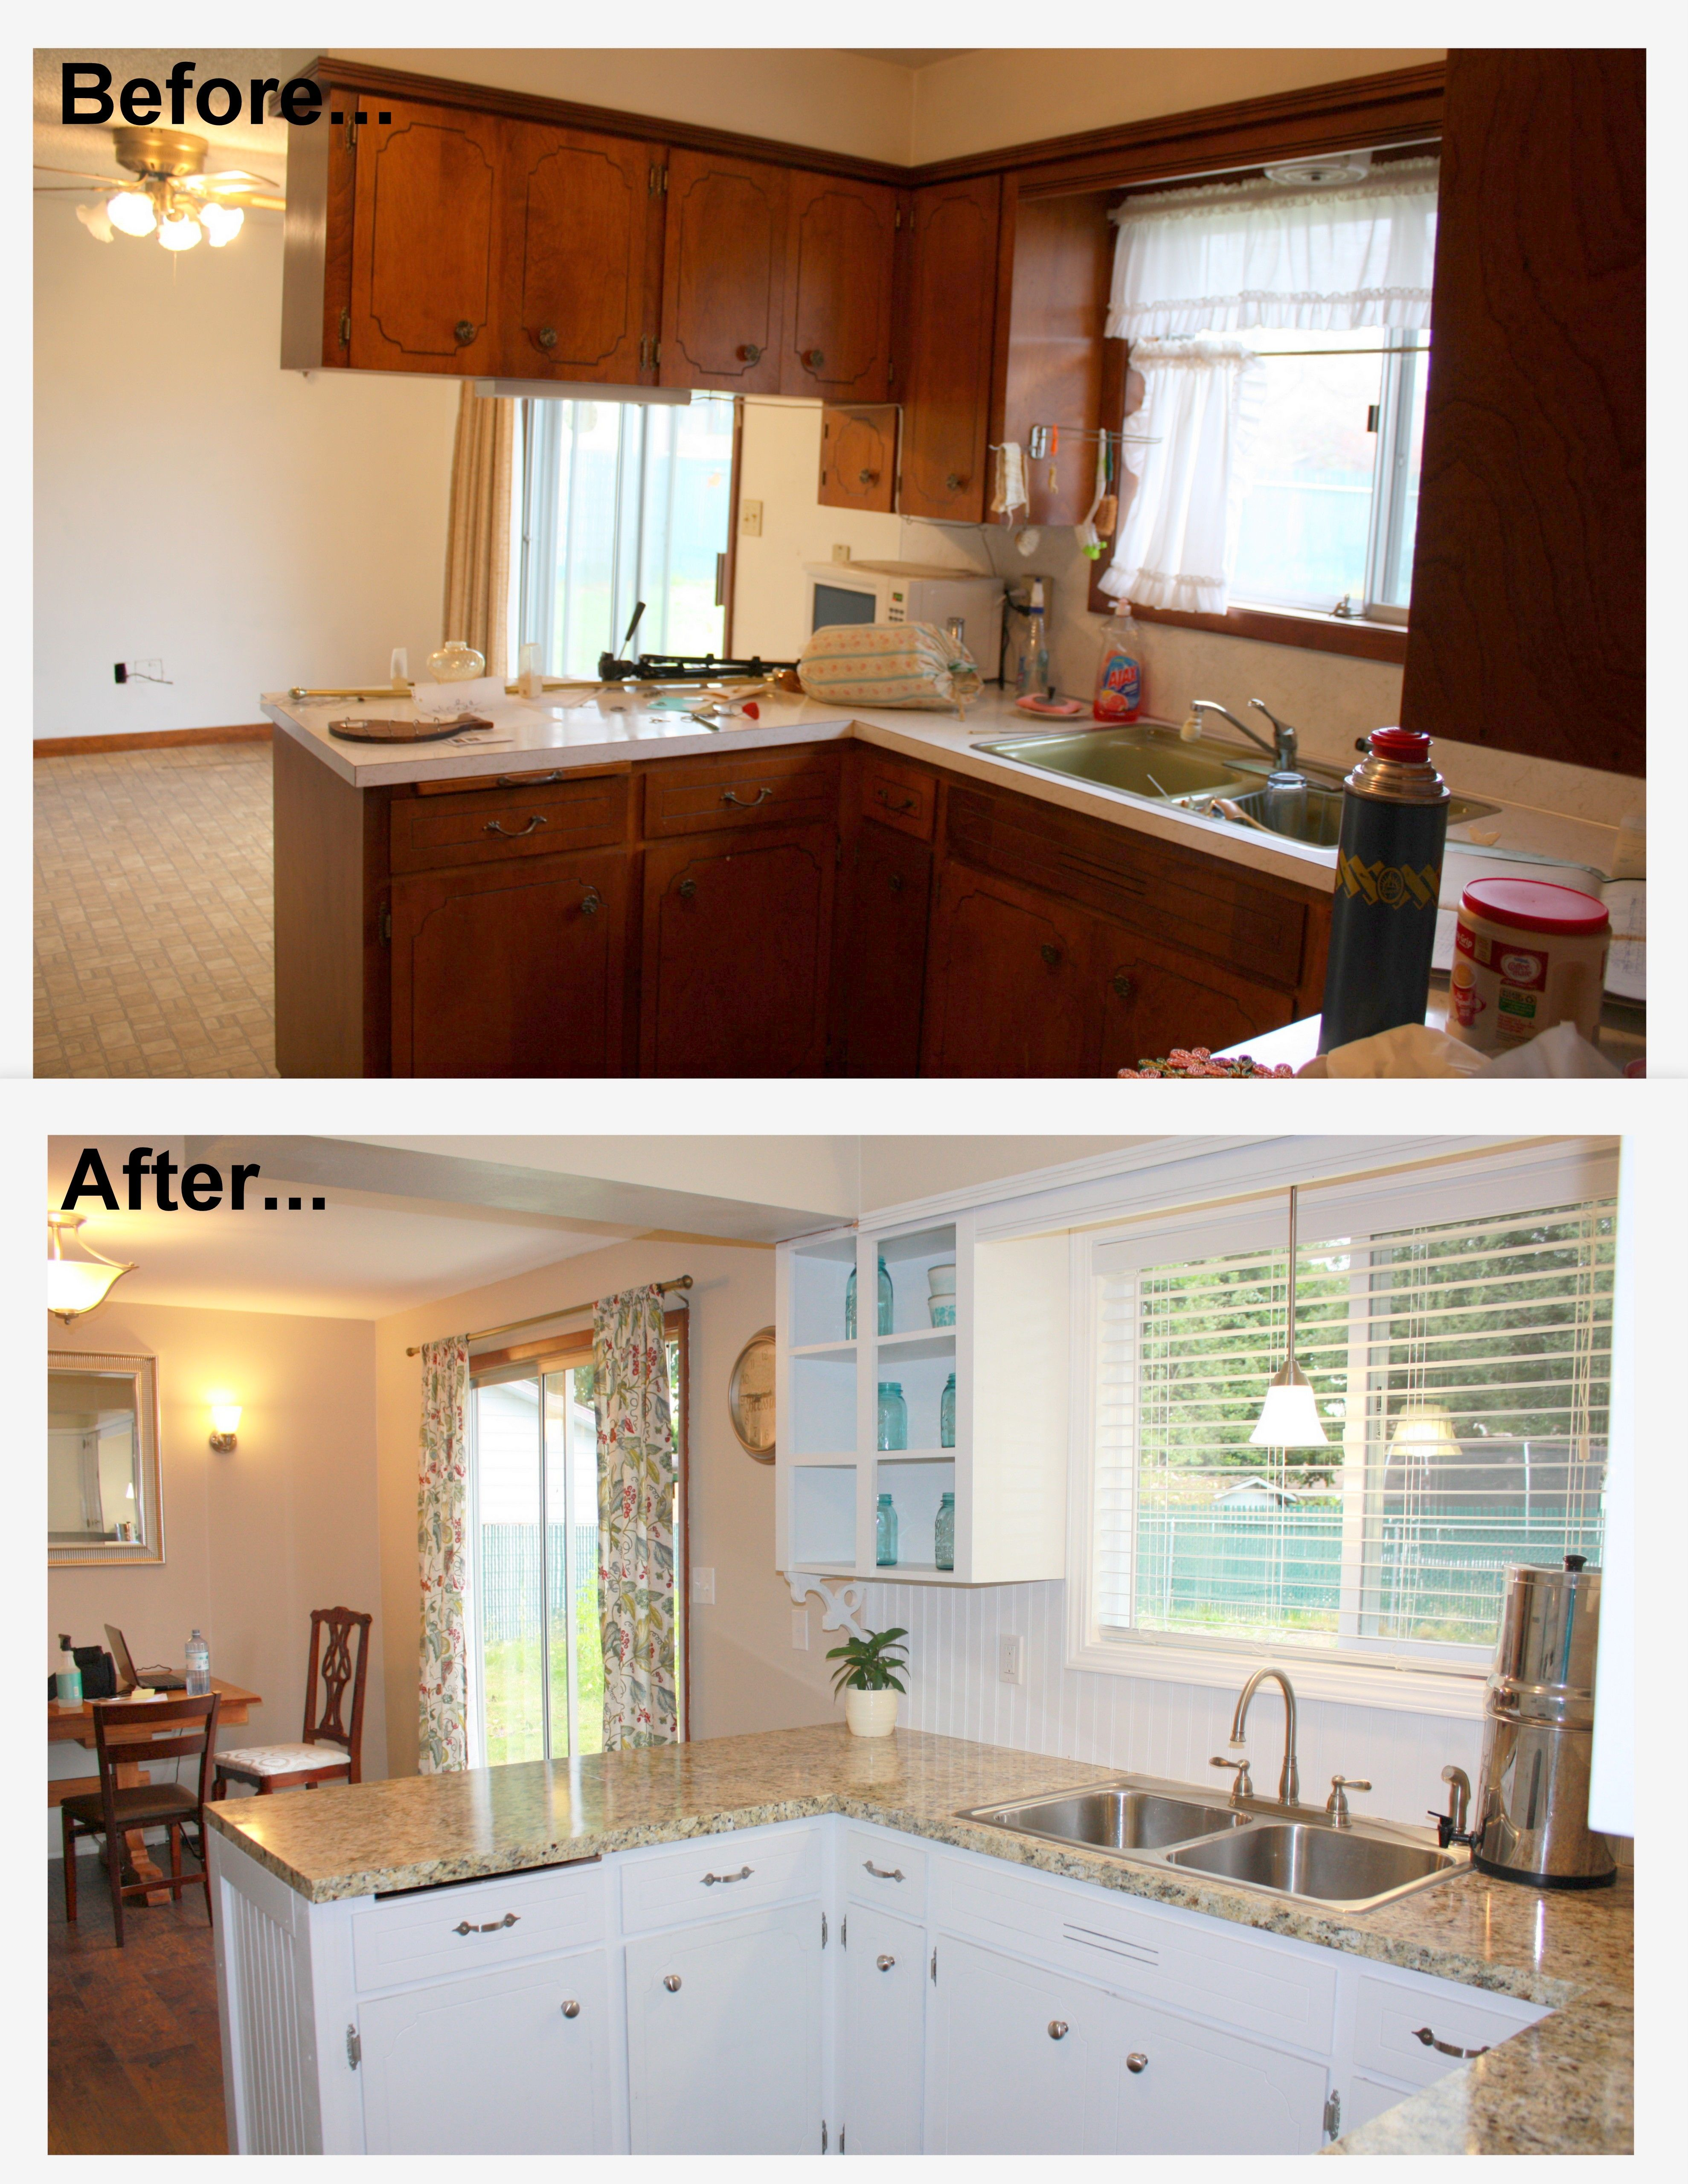 S Kitchen Makeover Remodel Before And After Hardwood